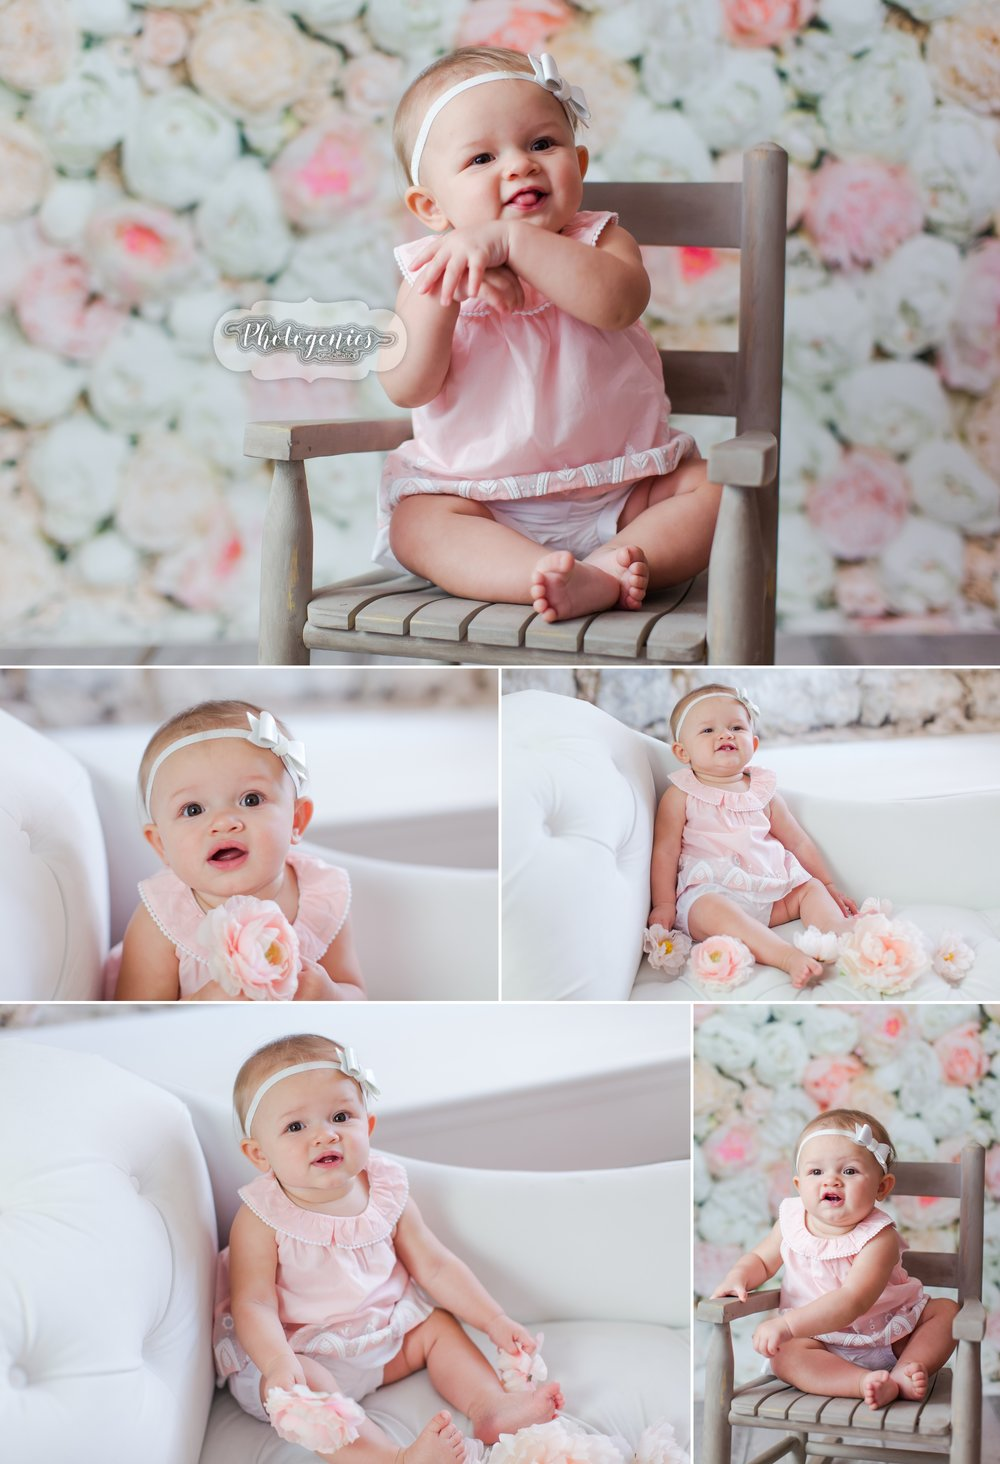 baby_girl_sitting_up_session_6_months_photography_props_cute_ideas_pearls_tutu_flowers 2